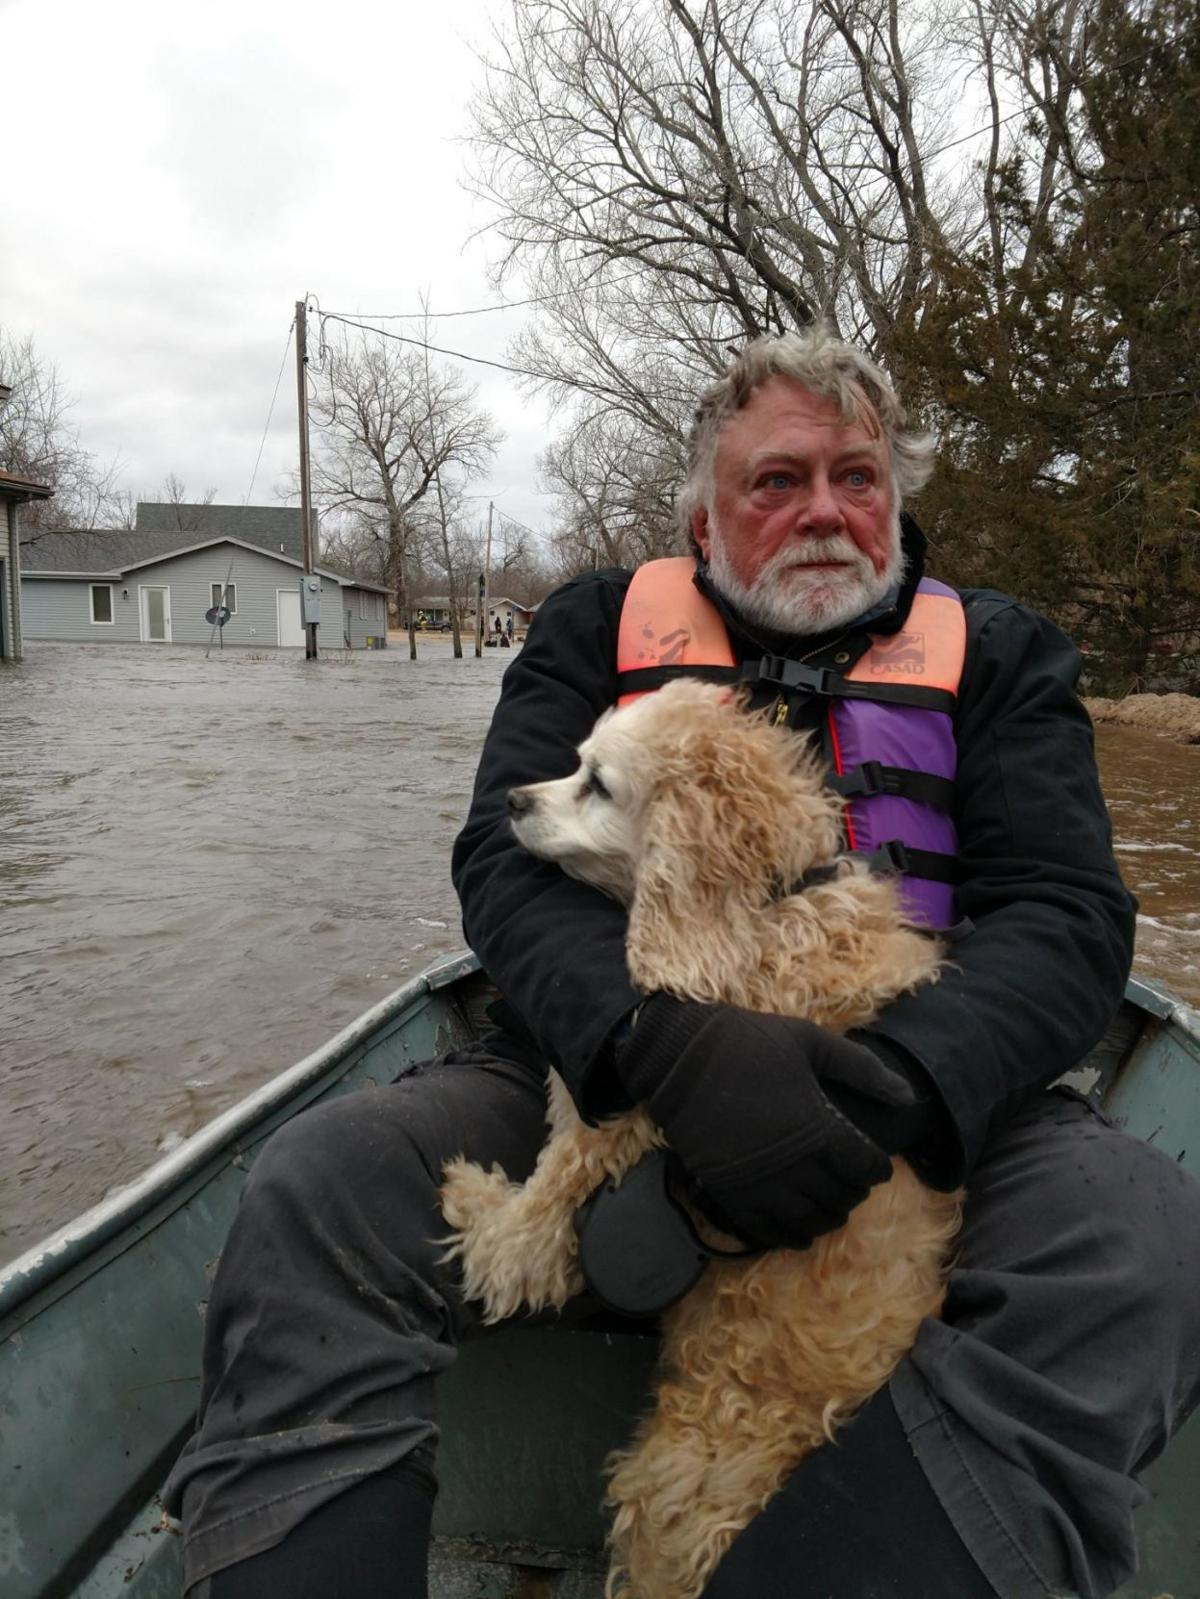 man and dog - Nebraska News Service top headlines